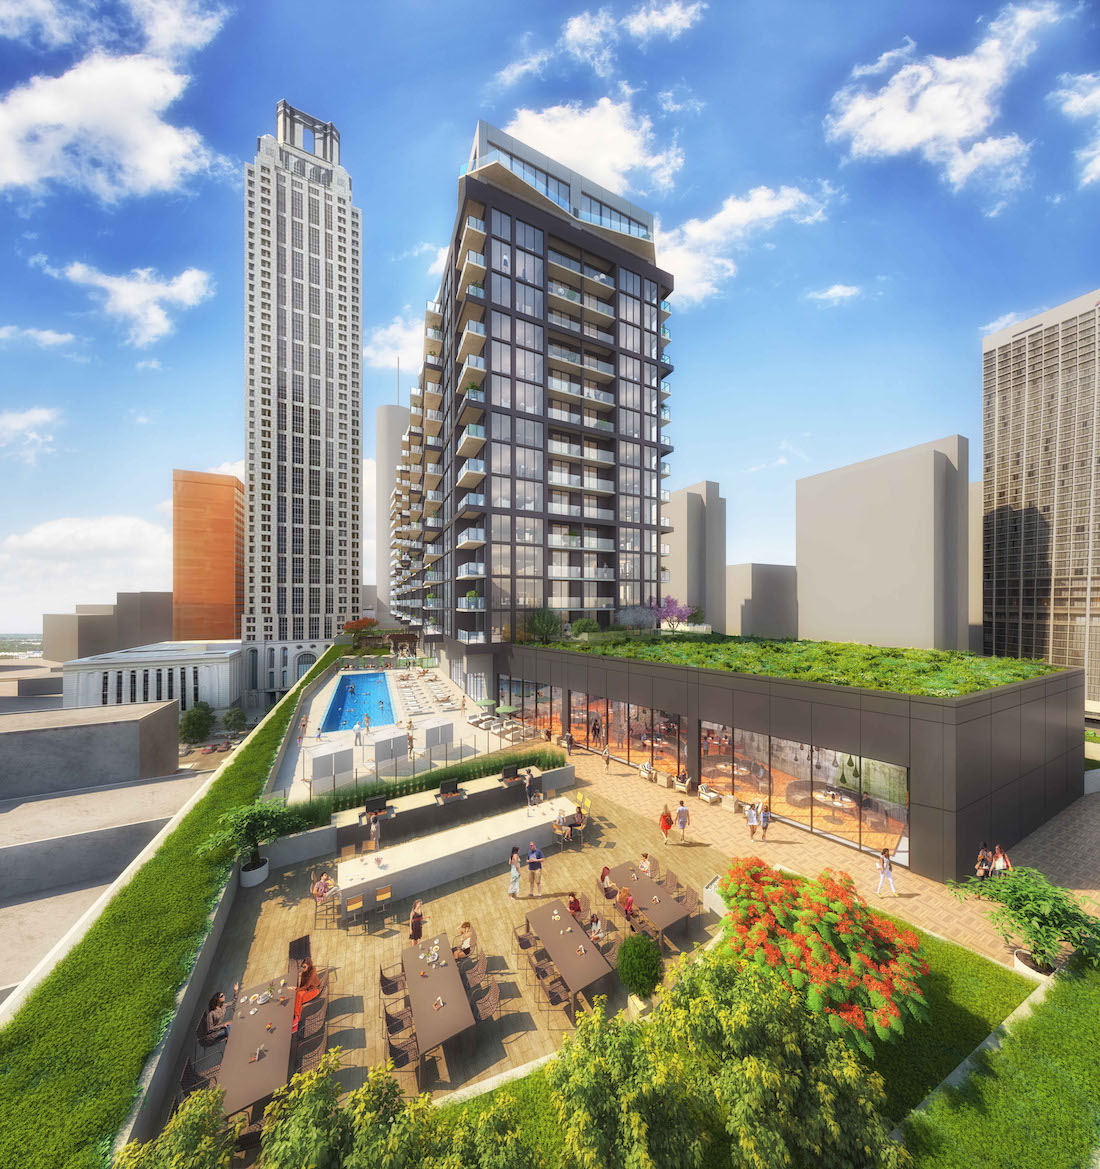 Apartments In Atlanta Metro Area: [Renderings] $125 MM Ascent Peachtree Residential Tower